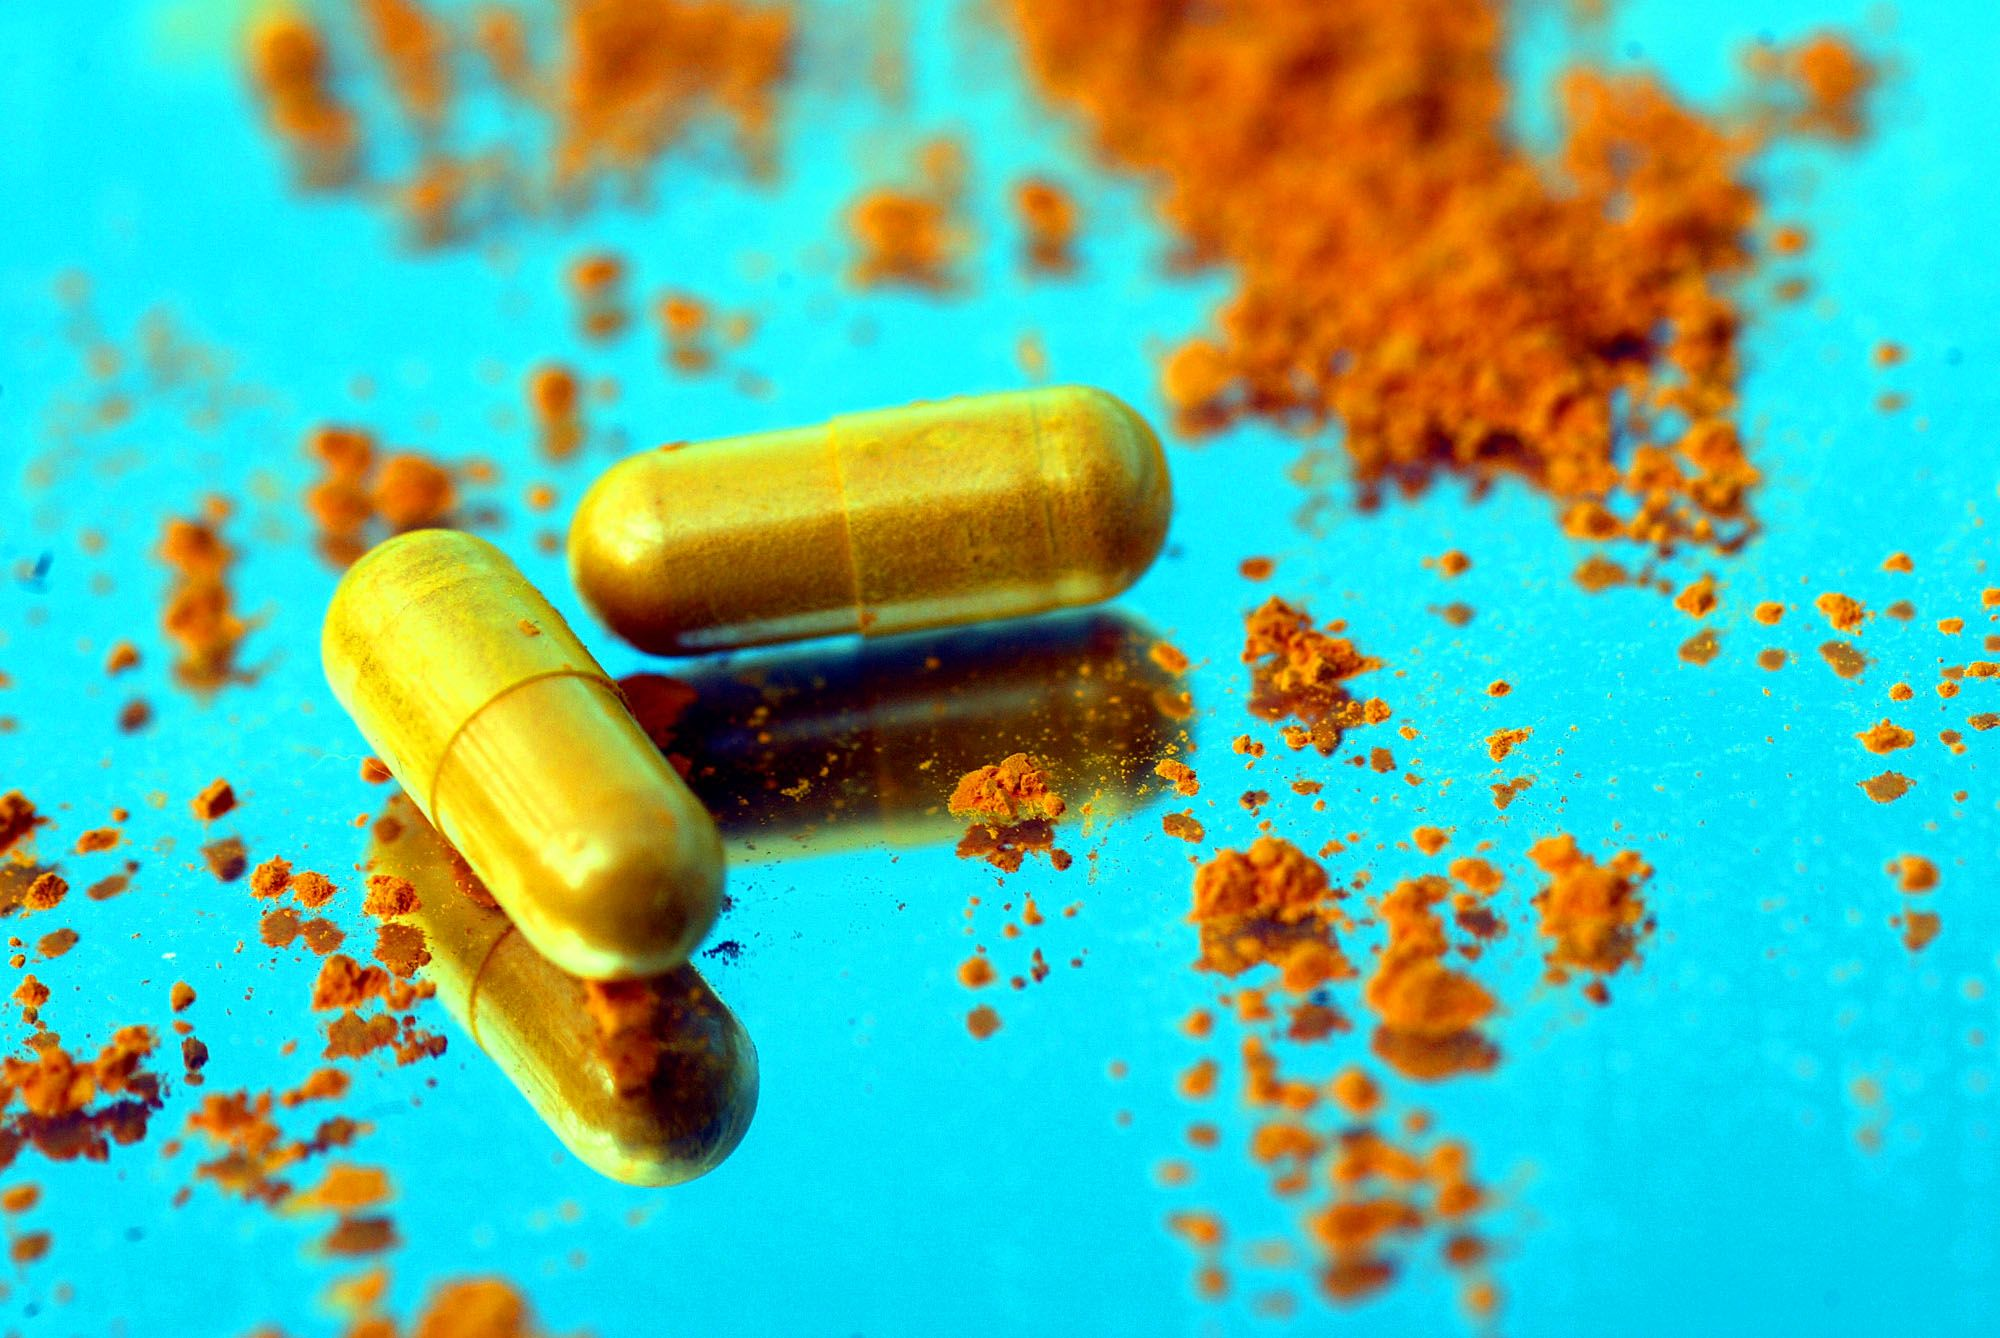 Turmeric Supplements Were Just Linked to Liver Damage